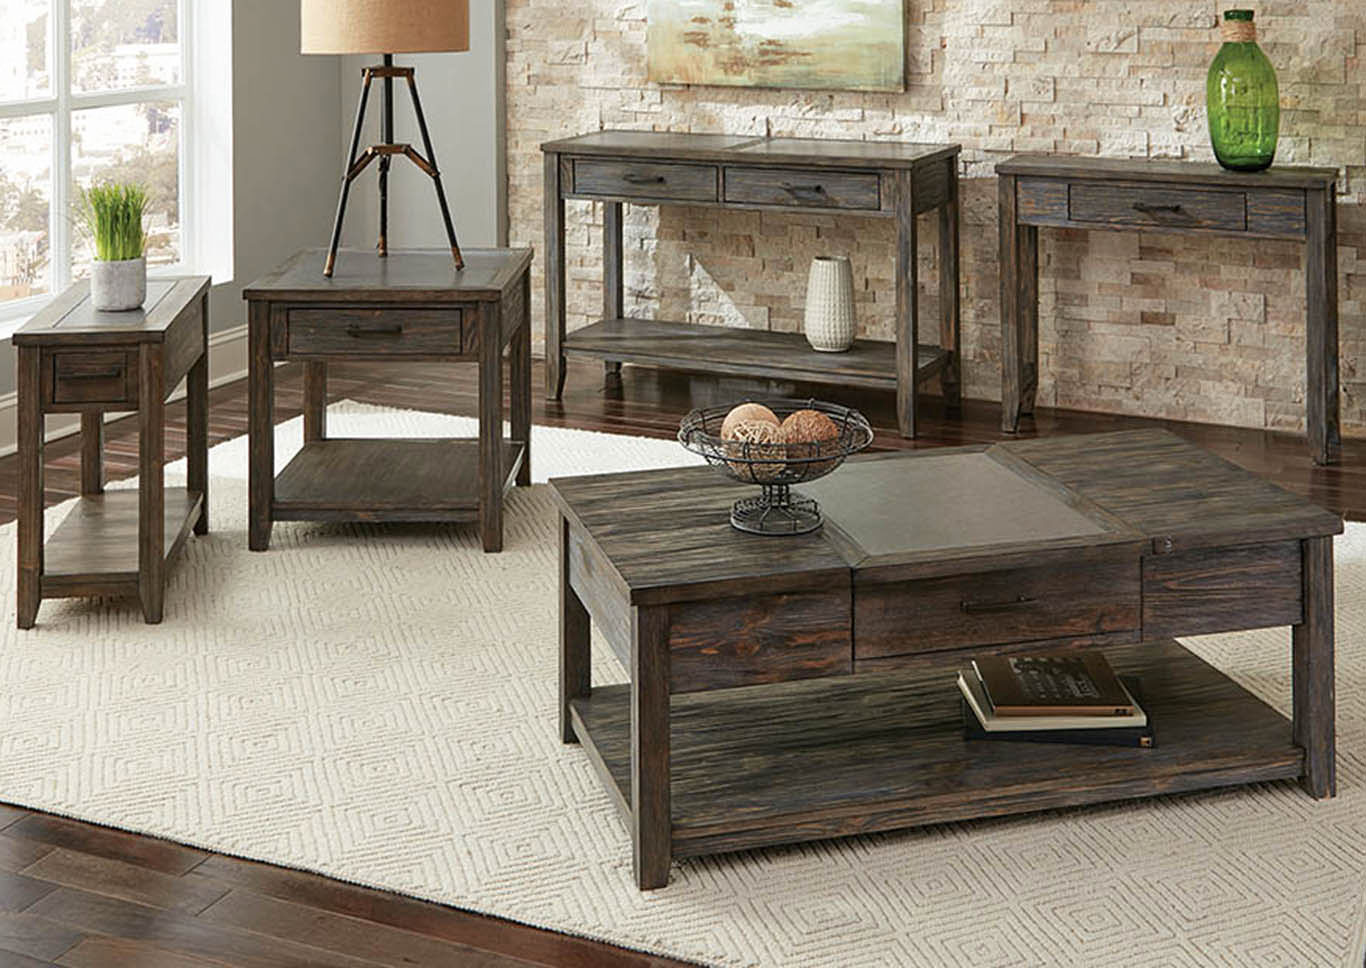 Rustic Nutmeg Coffee Table,Coaster Furniture